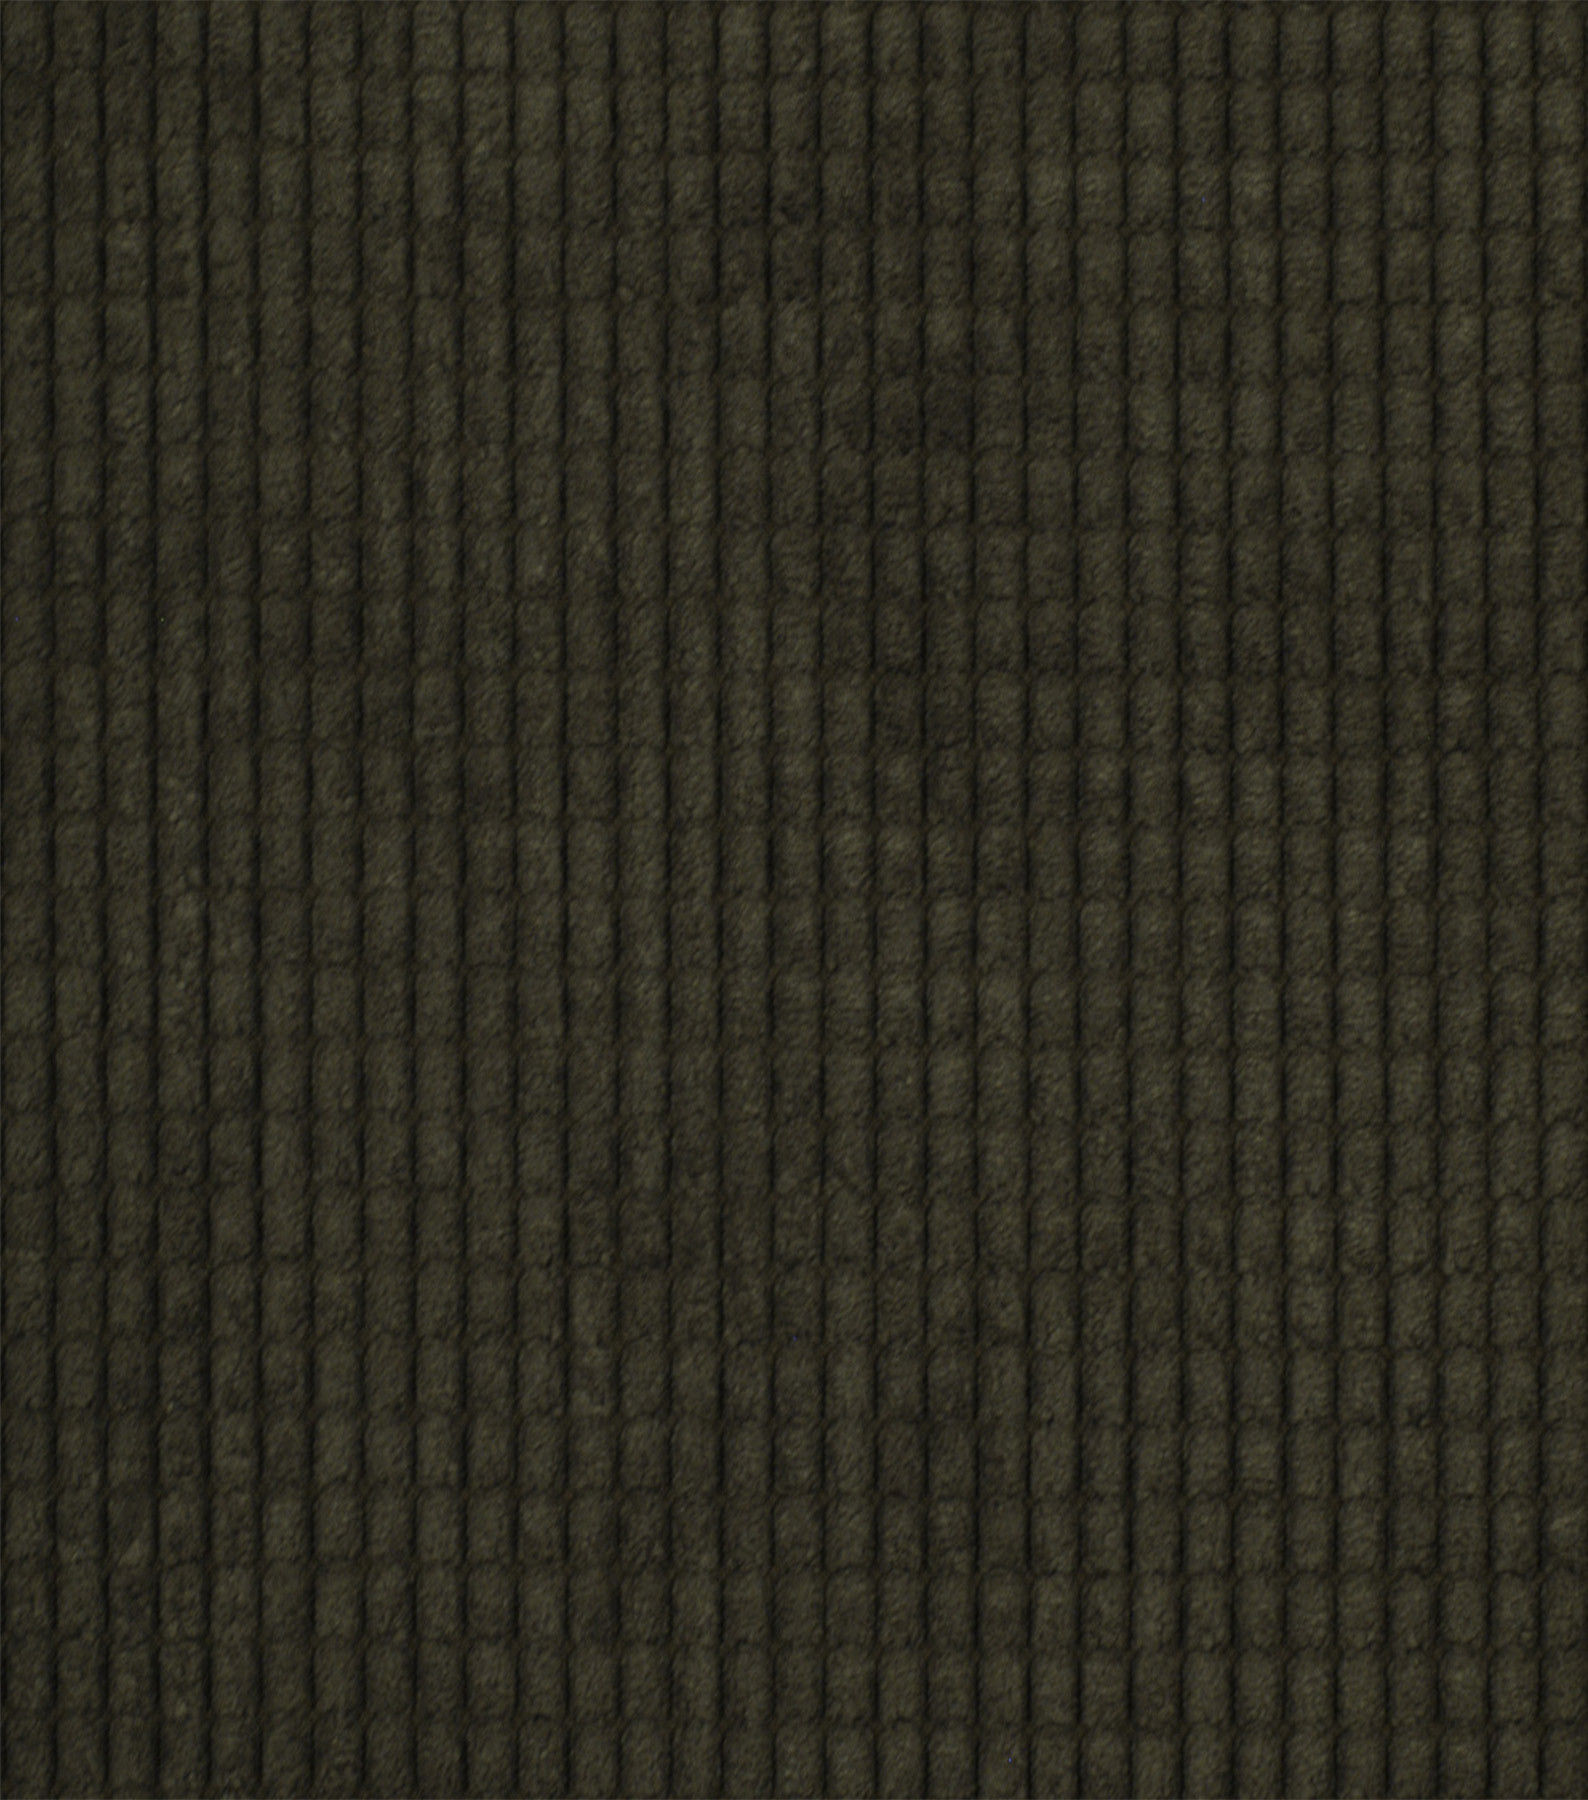 Home Decor 8\u0022x8\u0022 Fabric Swatch-Solid-Signature Series Eastfield Graphite